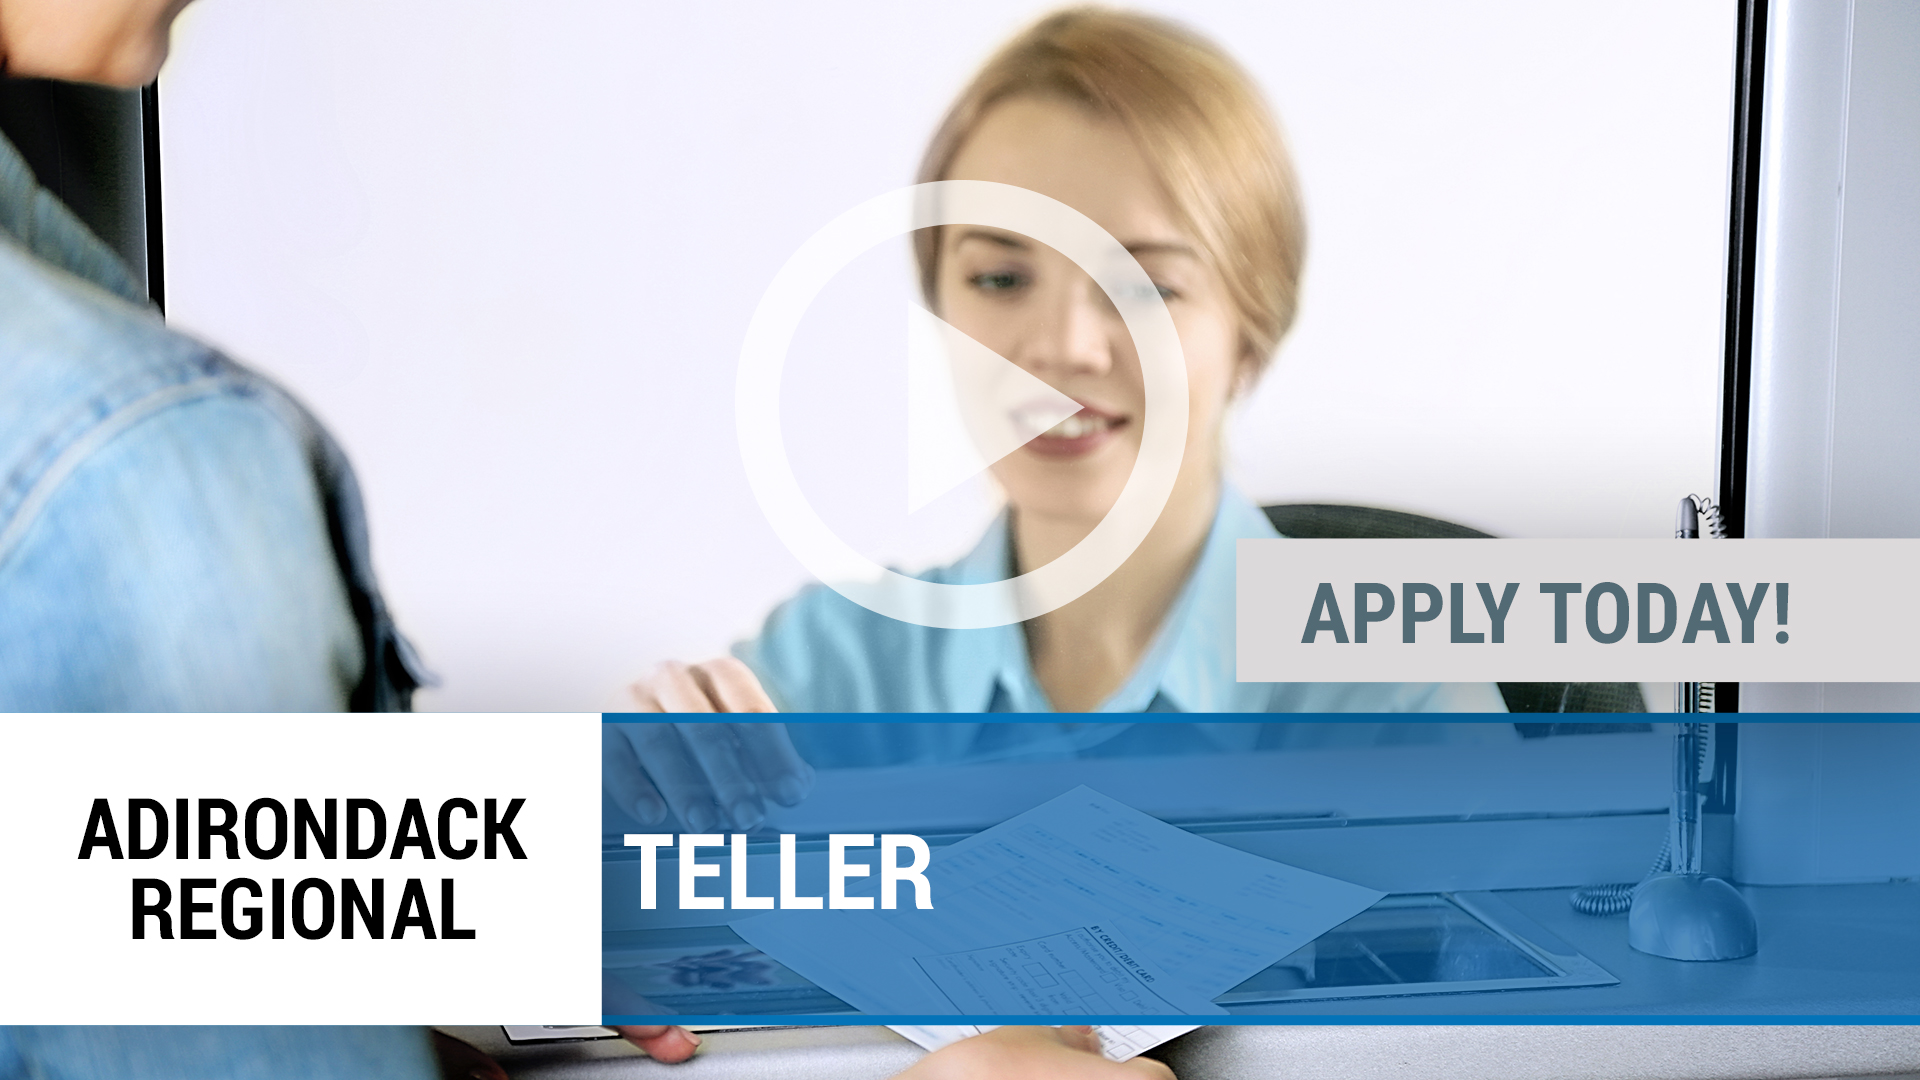 Watch our careers video for available job opening TE;;ER in Tupper Lake, NY